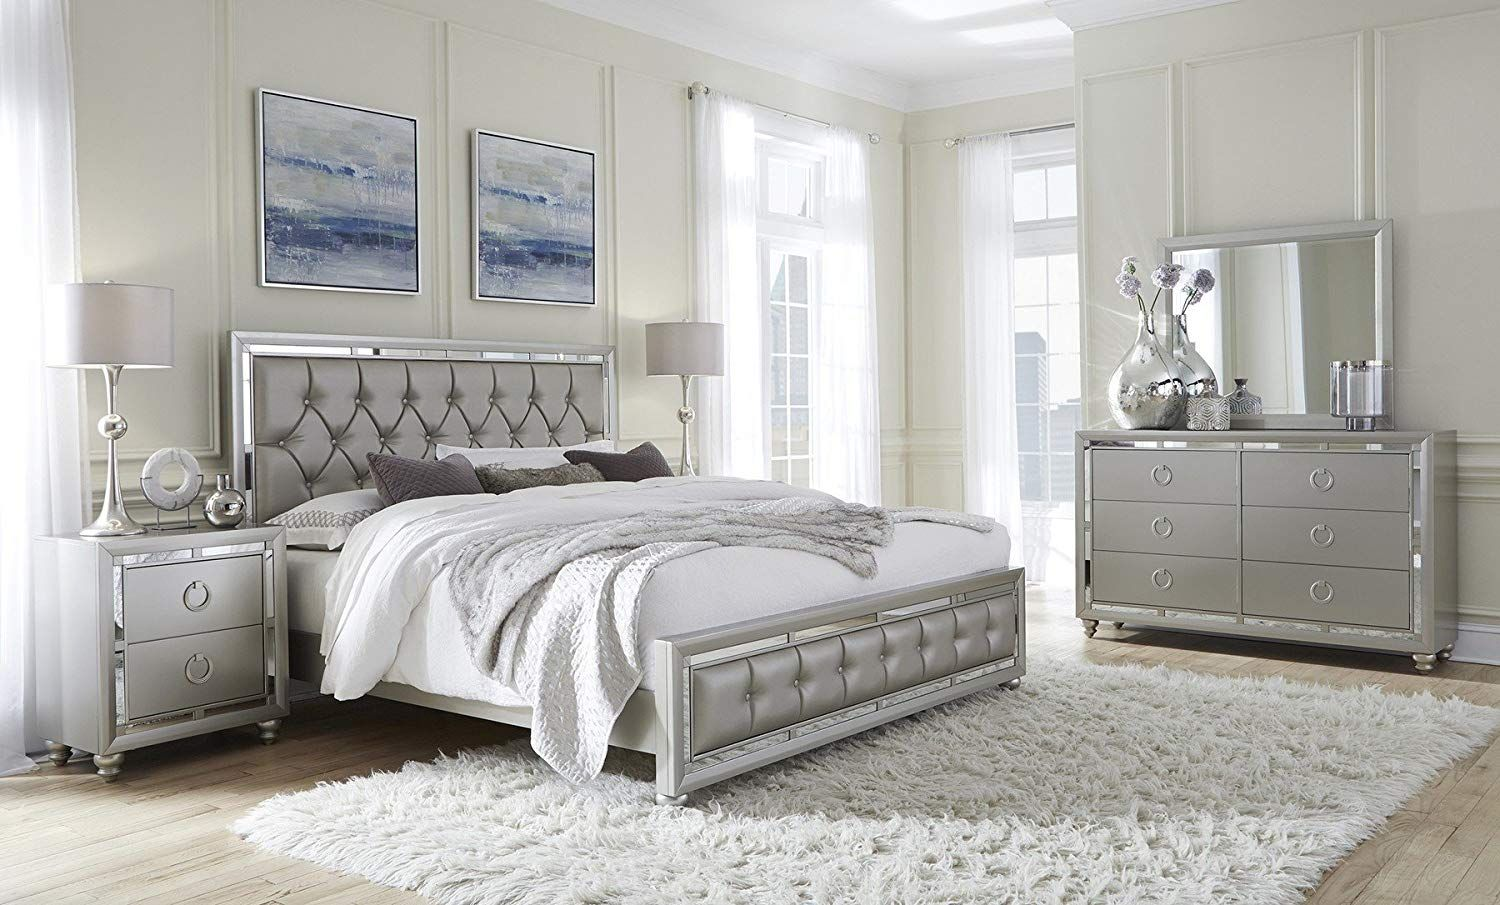 15 Cheap Modern Bedroom Sets You Can Buy  Bedroom furniture sets